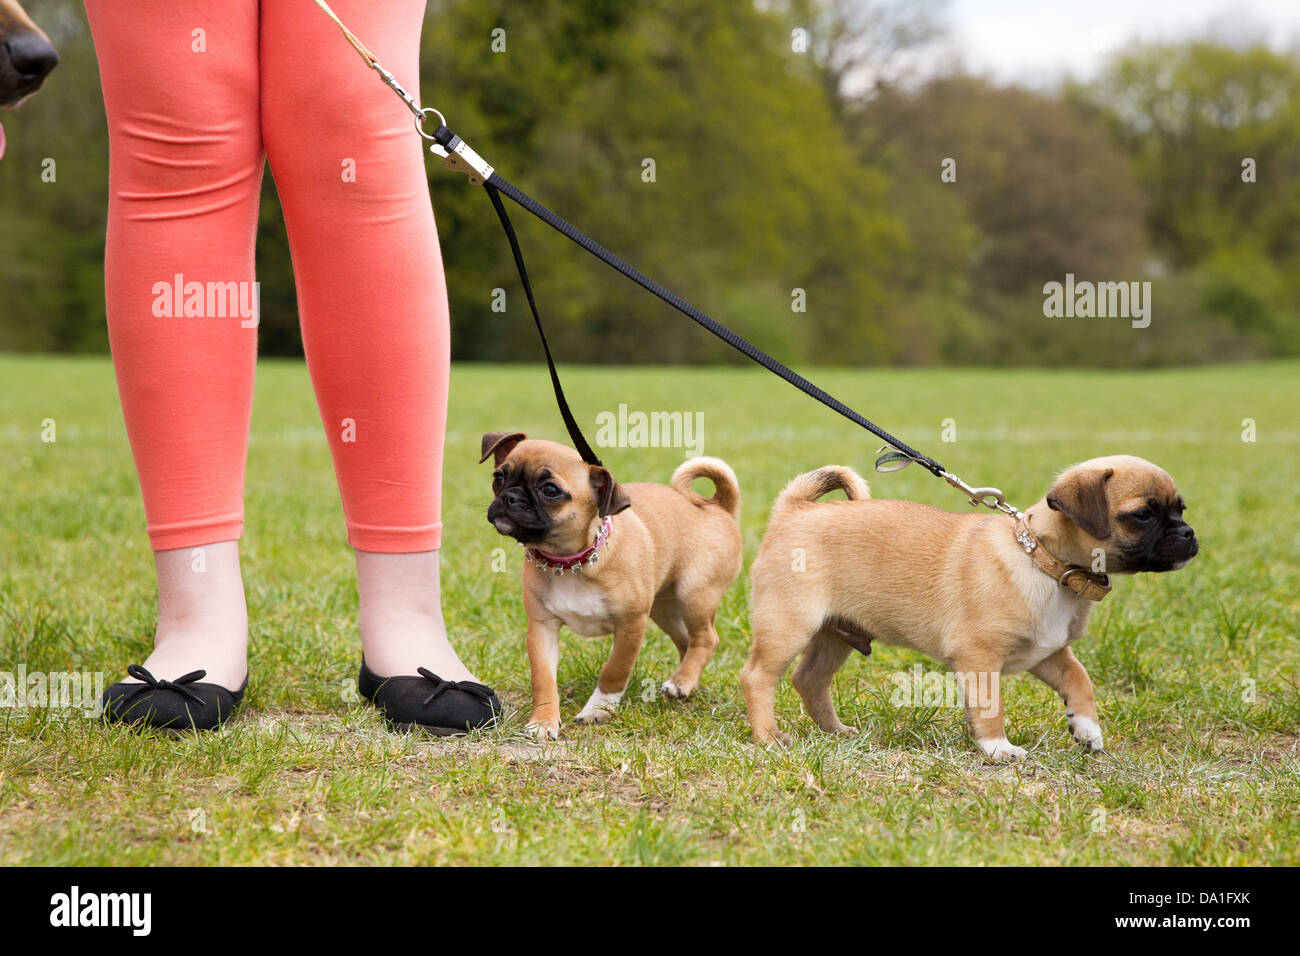 A girl holds two small dogs on a lead - Stock Image